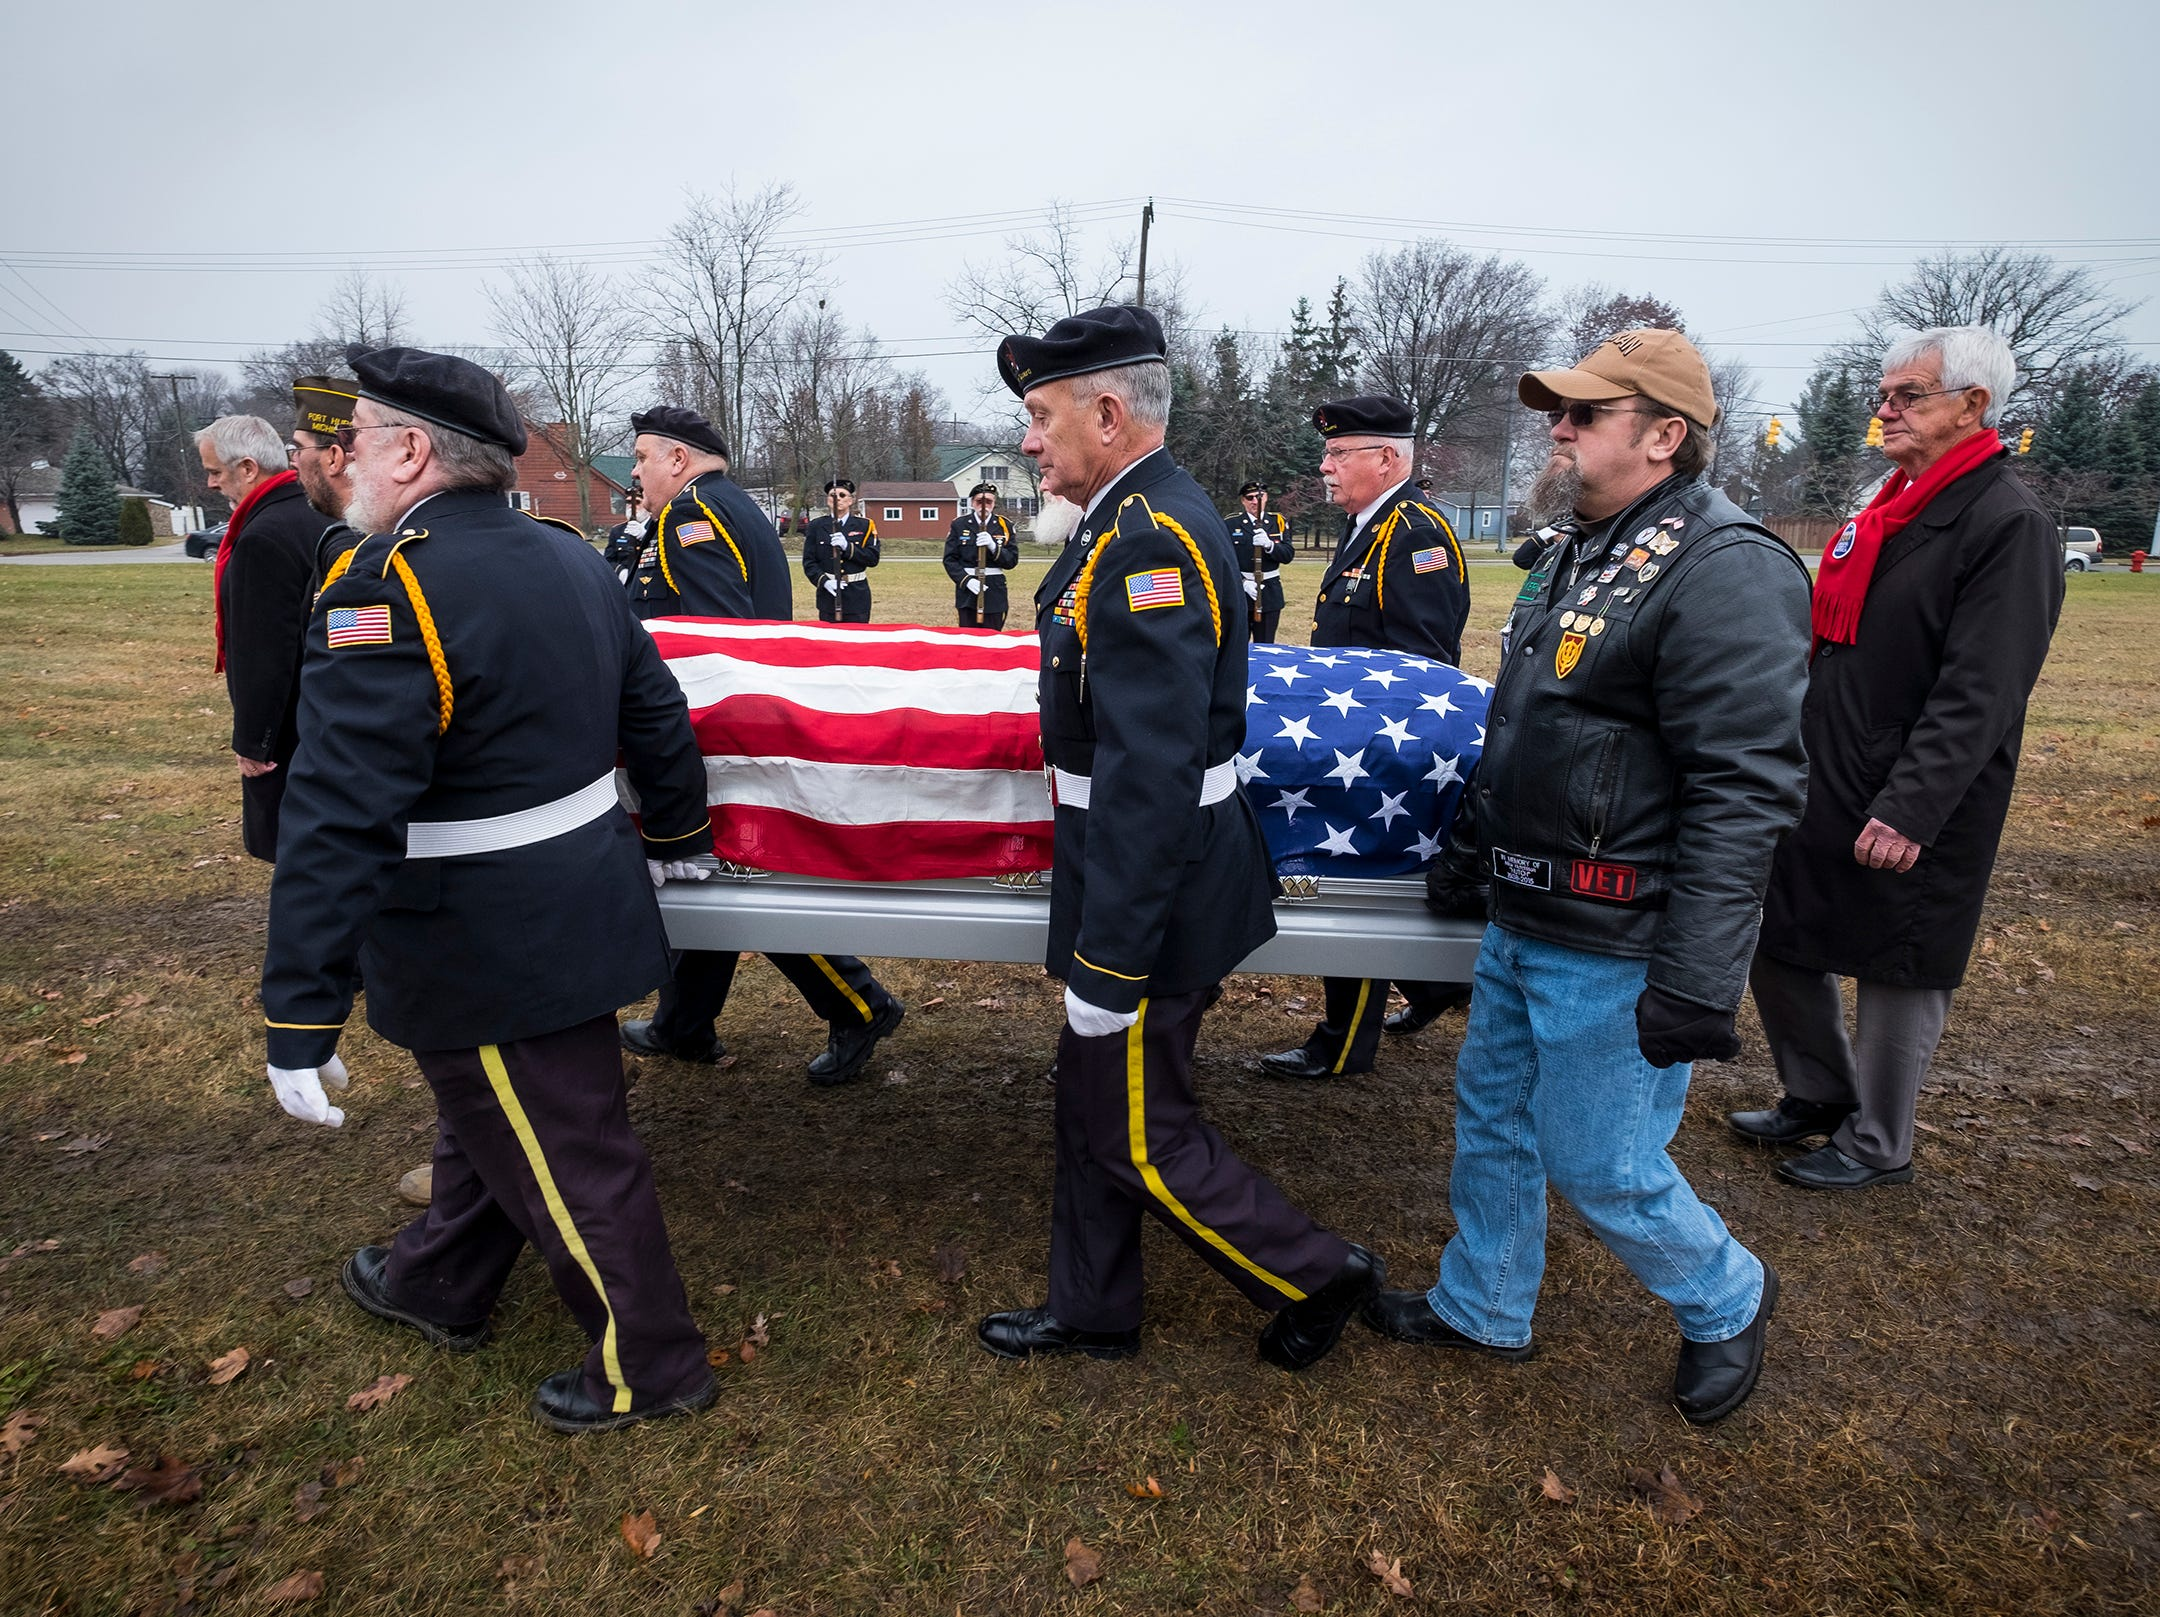 The casket of Joseph A. Humphries is carried past members of the St. Clair County Allied Veterans Council Honor Guard at the start of his funeral service Friday, Dec. 14, 2018 at the Allied Veterans Cemetery in Fort Gratiot.